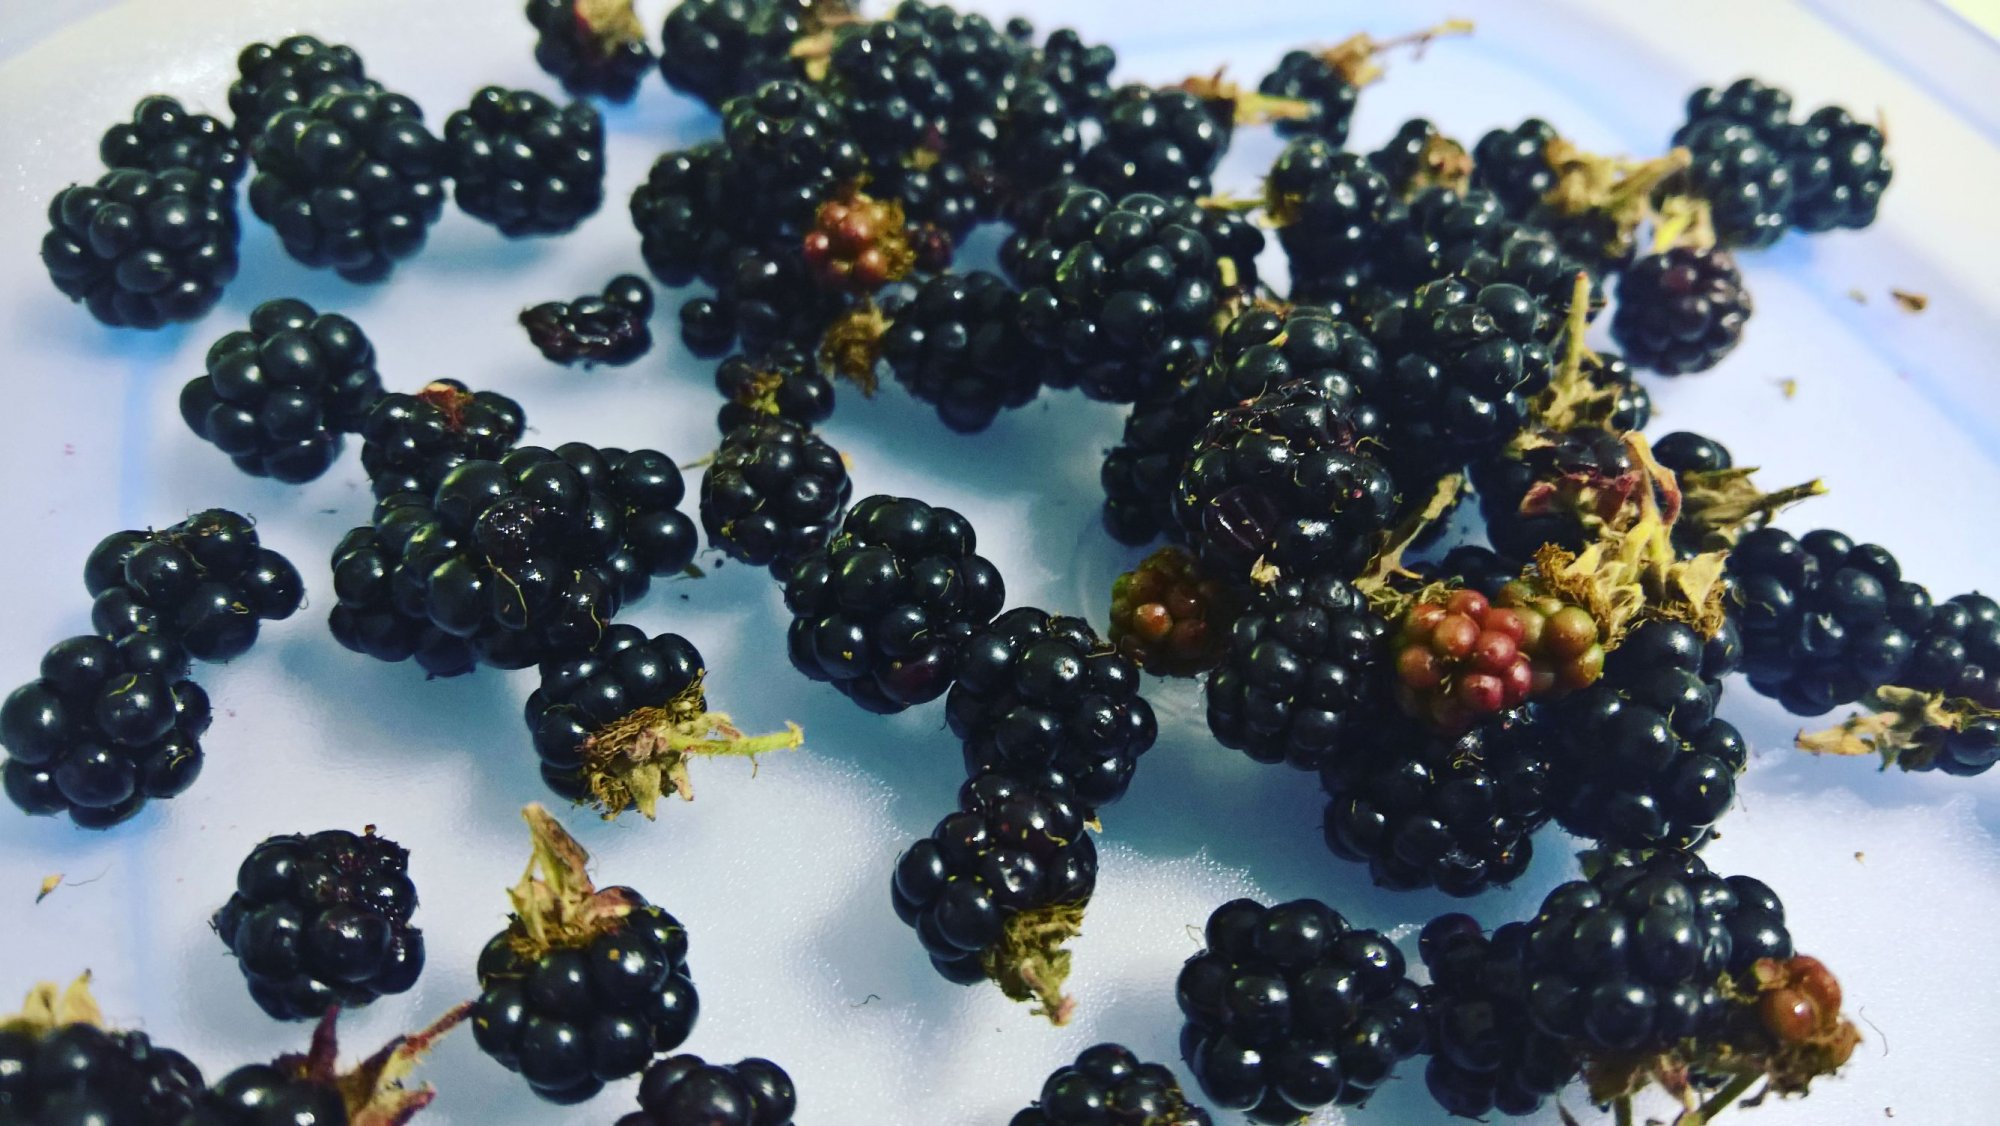 A pile of blackberries on a plate